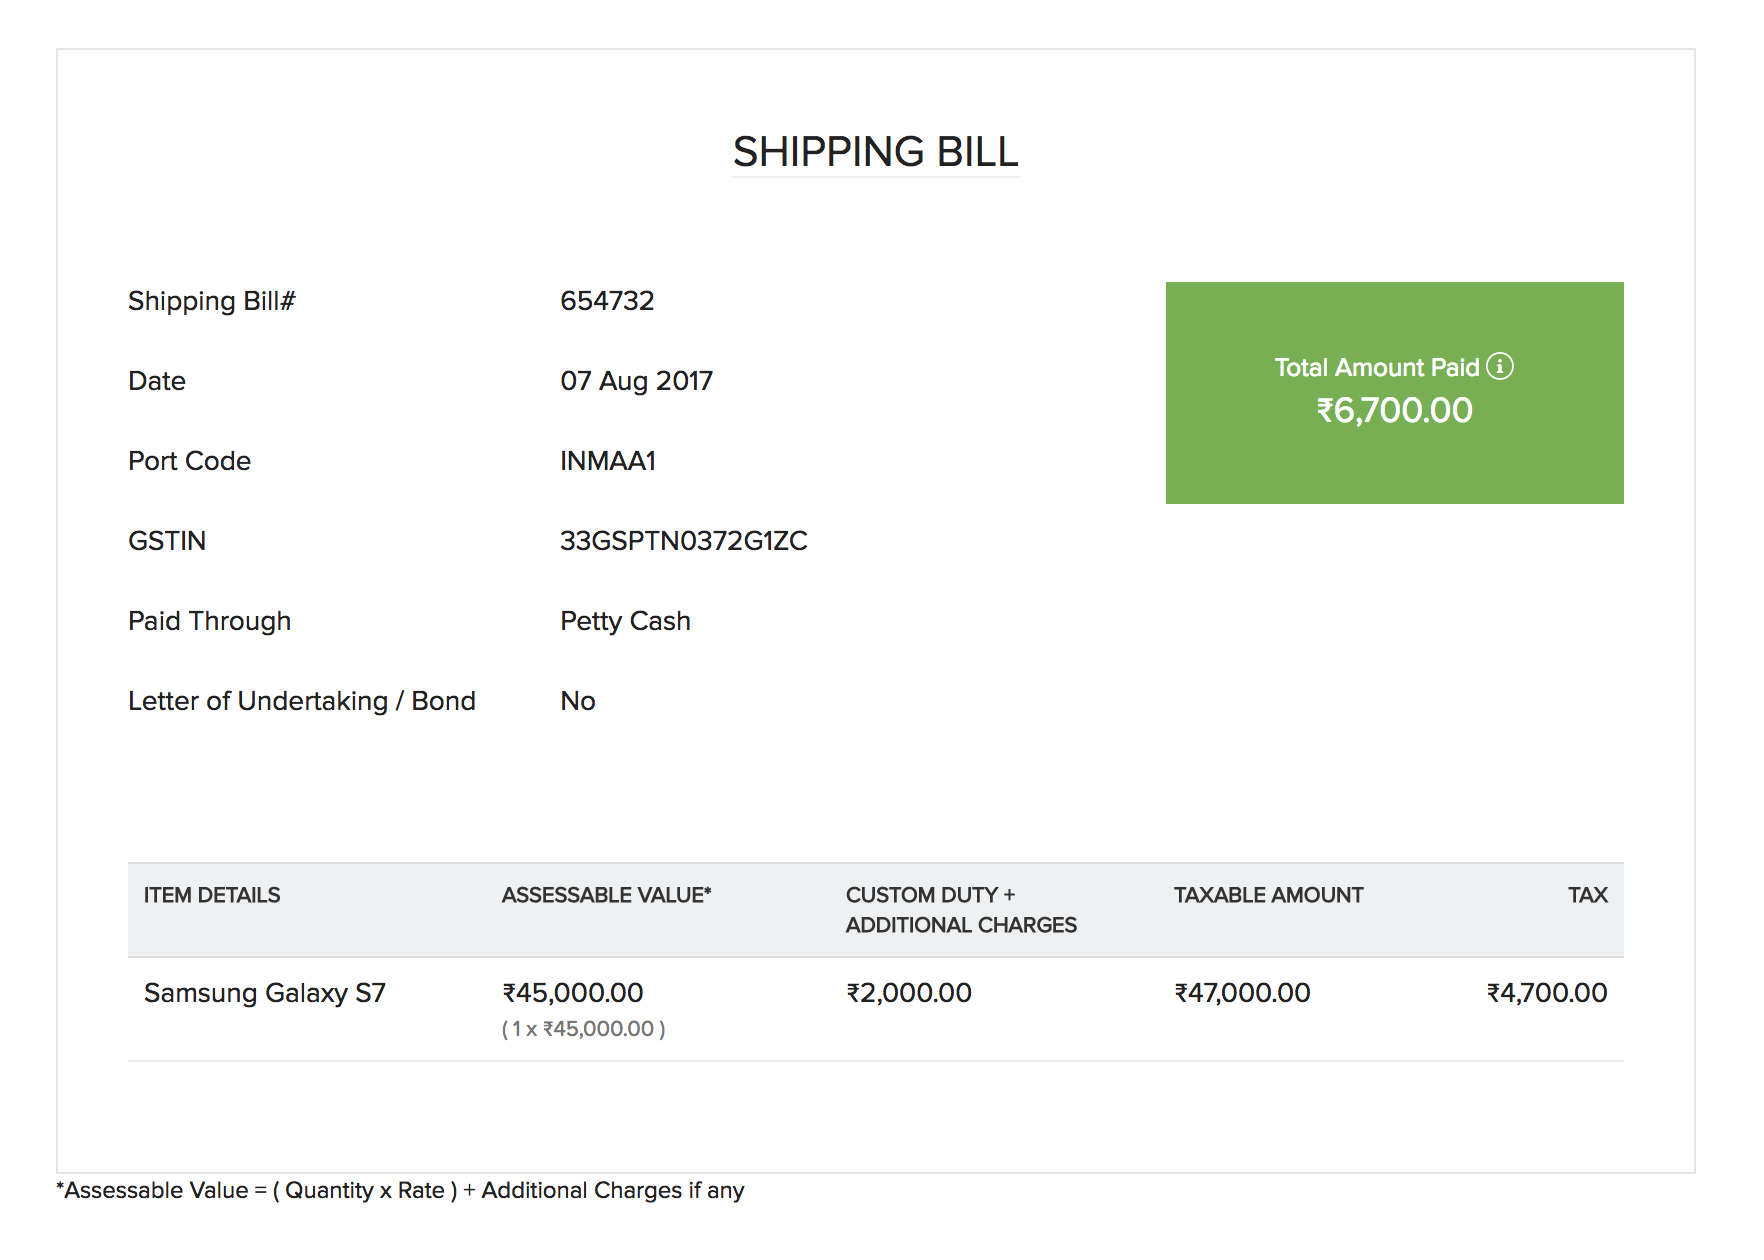 Receipt For Payment Received Template For Manual Shipping Bill Details  Receipt For Payment Receivedhtml